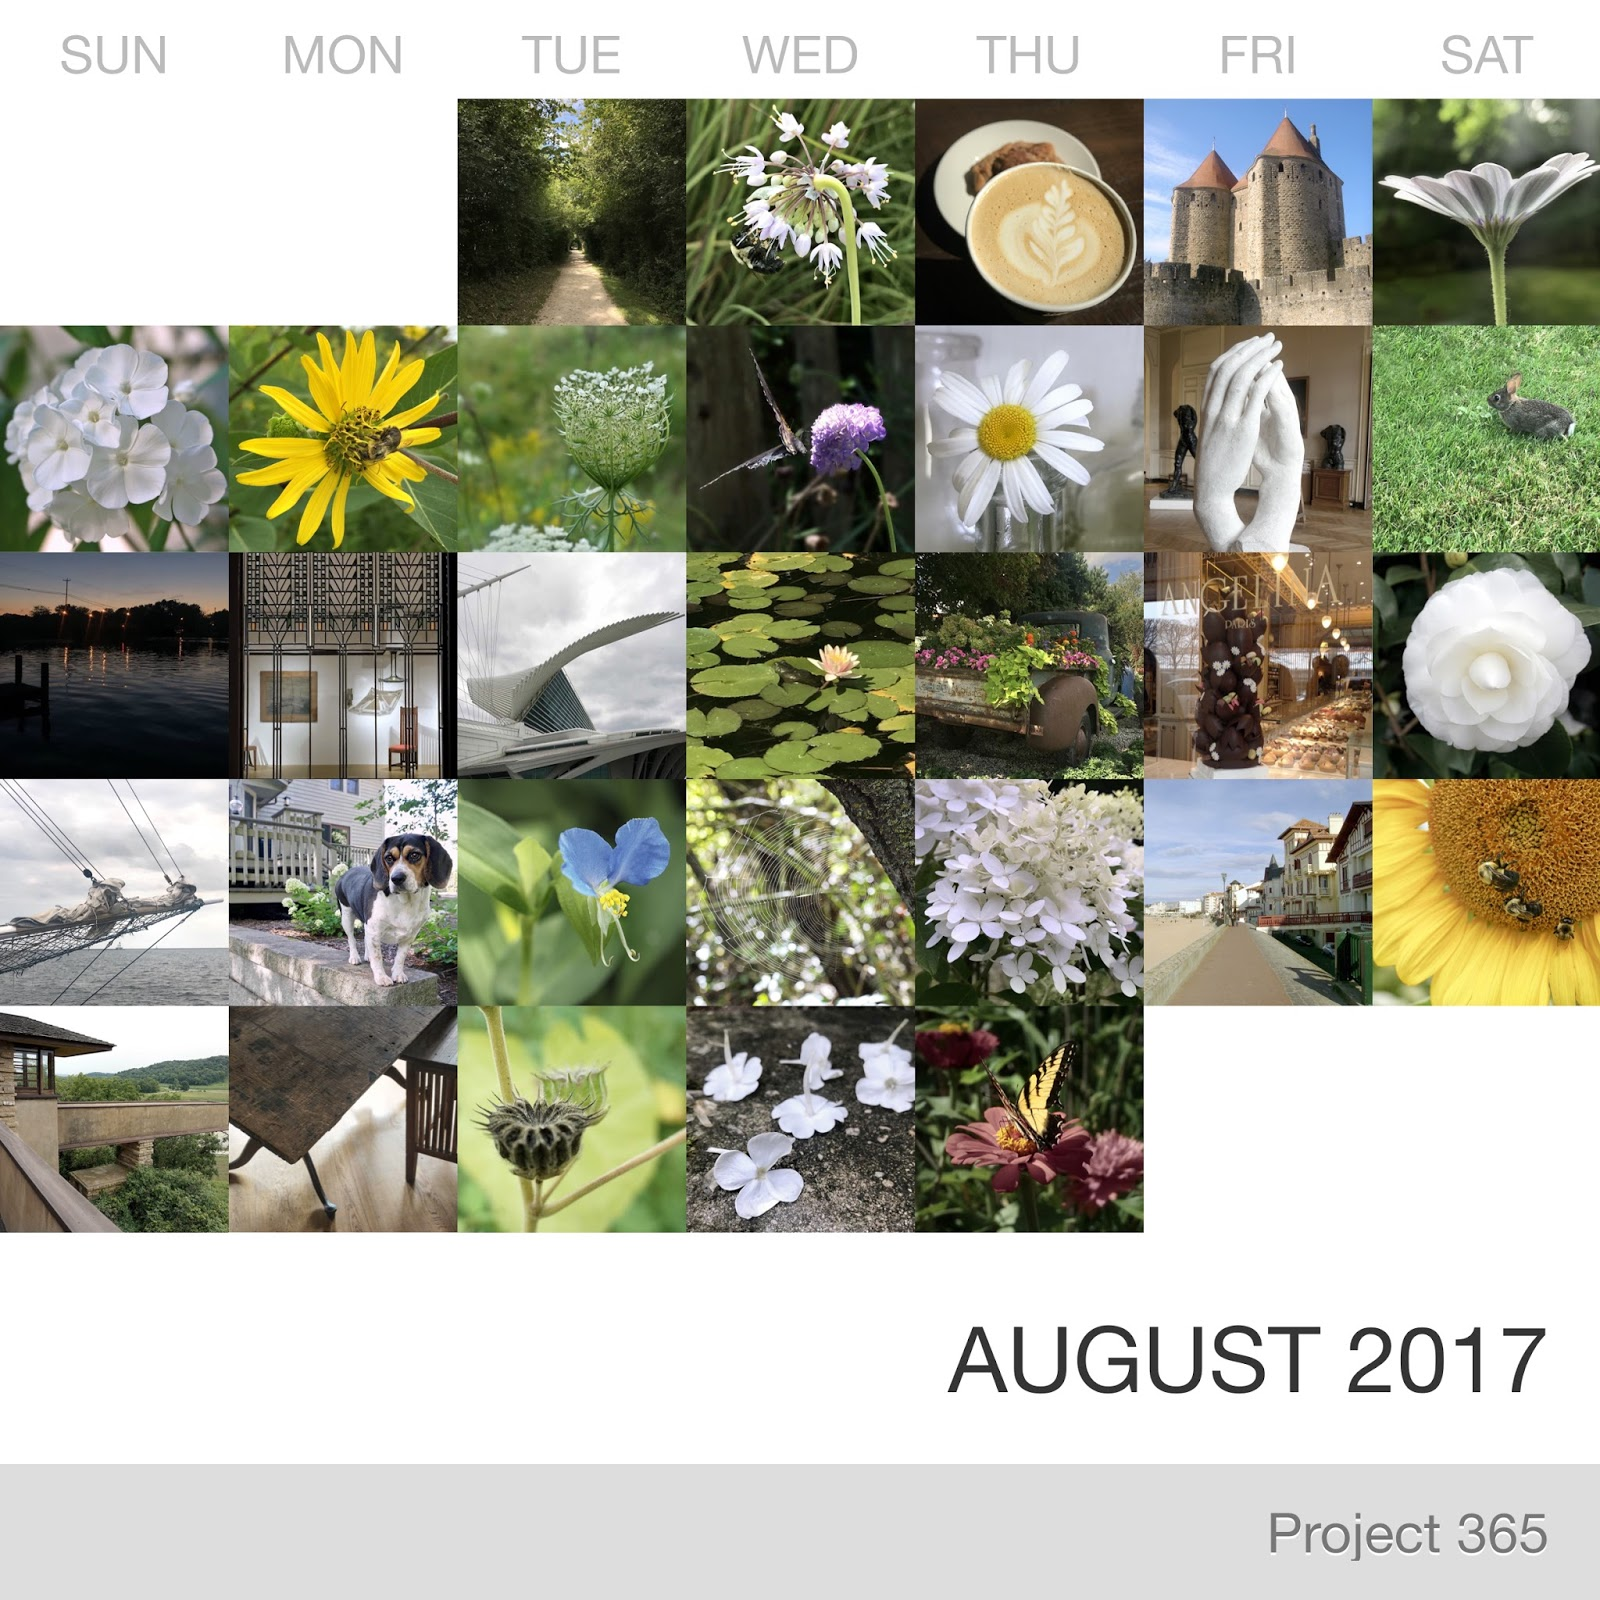 Project 365 _August-2017_Collage.jpg